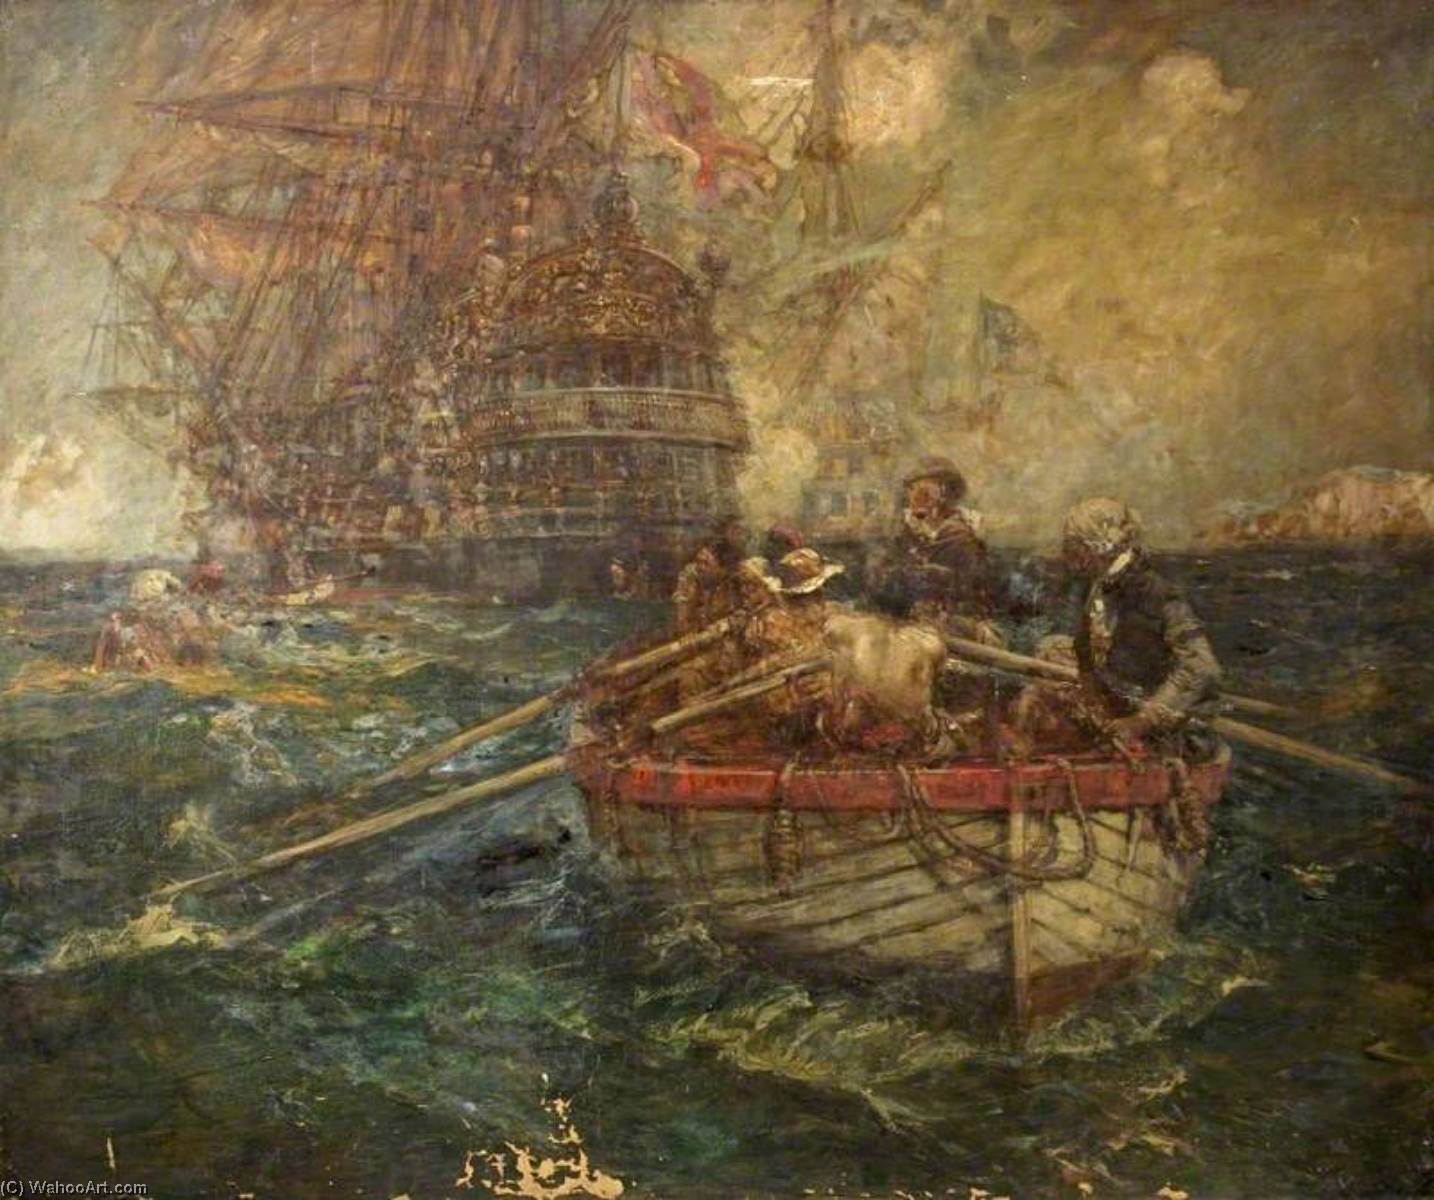 A Fight with Pirates on the High Seas by Bernard Finnigan Gribble | Art Reproduction | WahooArt.com